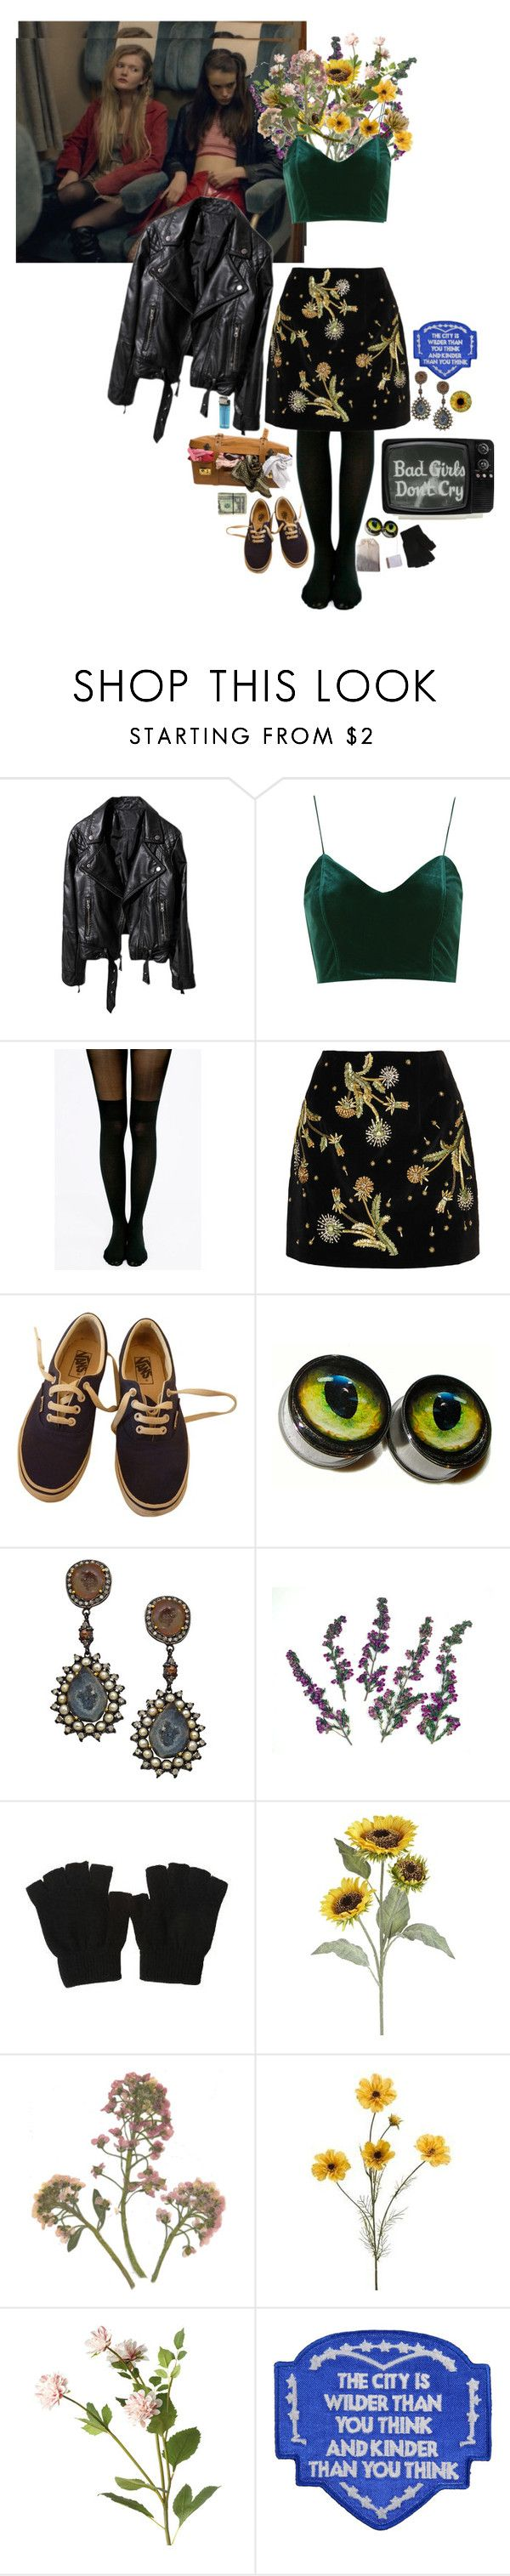 """""""part heart"""" by ghoulgirls ❤ liked on Polyvore featuring Topshop, Pretty Polly, Topshop Unique, Vans, Divya Diamond, Pier 1 Imports, OKA and Each X Other"""